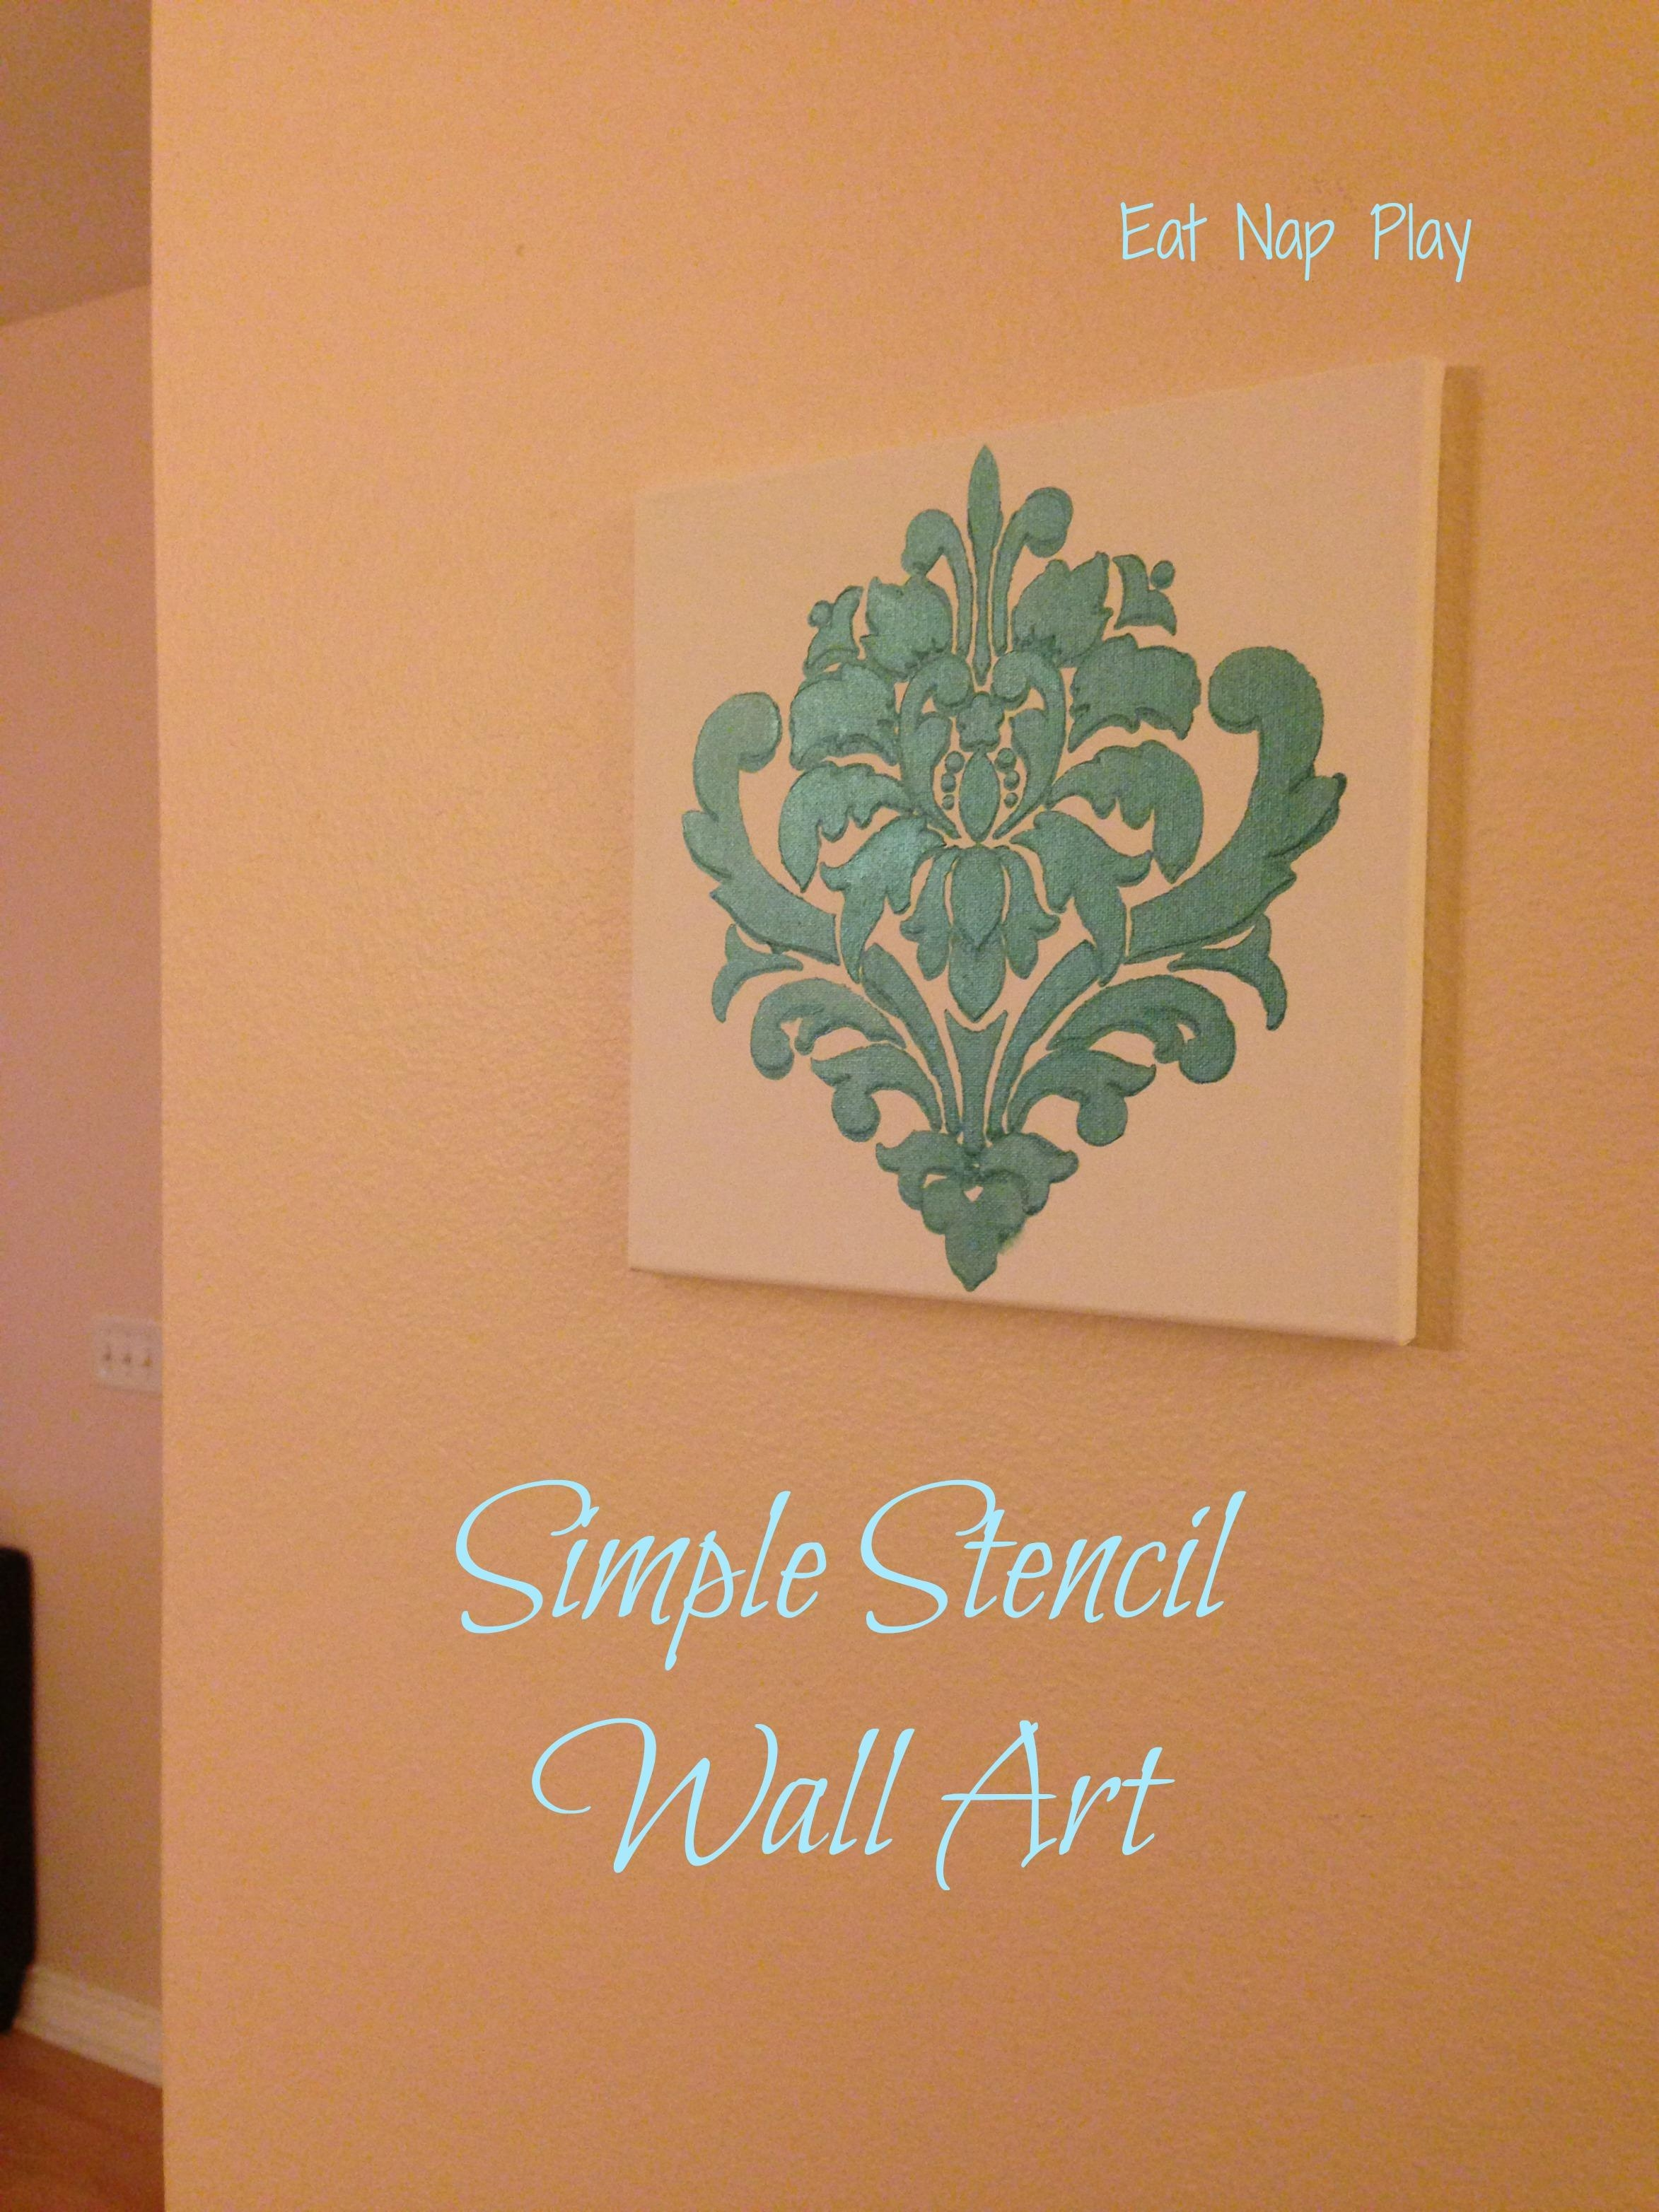 Simple Stencil Wall Art Project | Eatnapplay In Stencil Wall Art (View 16 of 20)